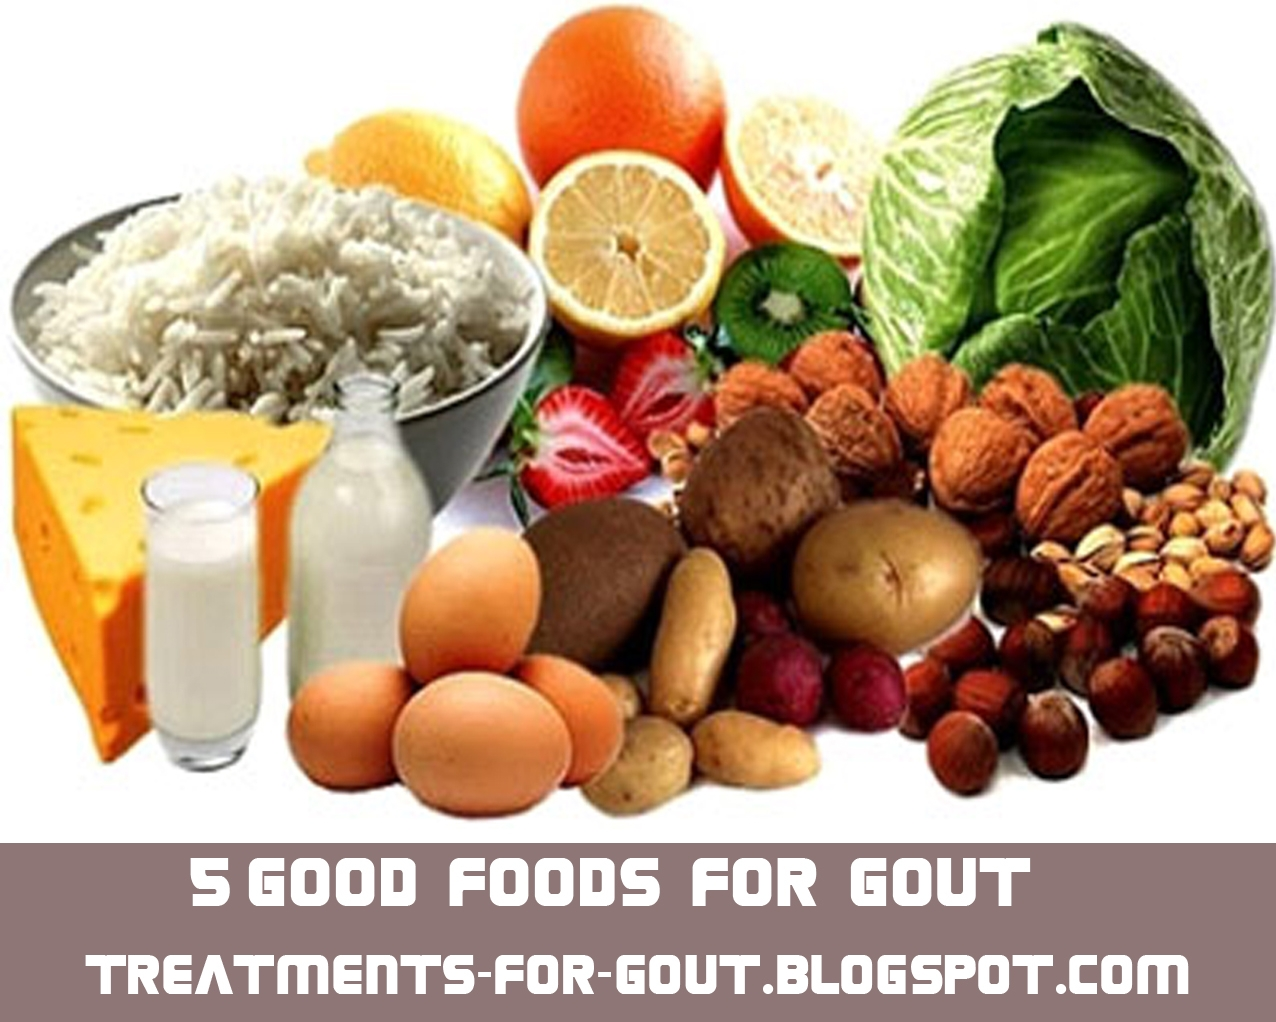 Good Foods To Eat For Gout